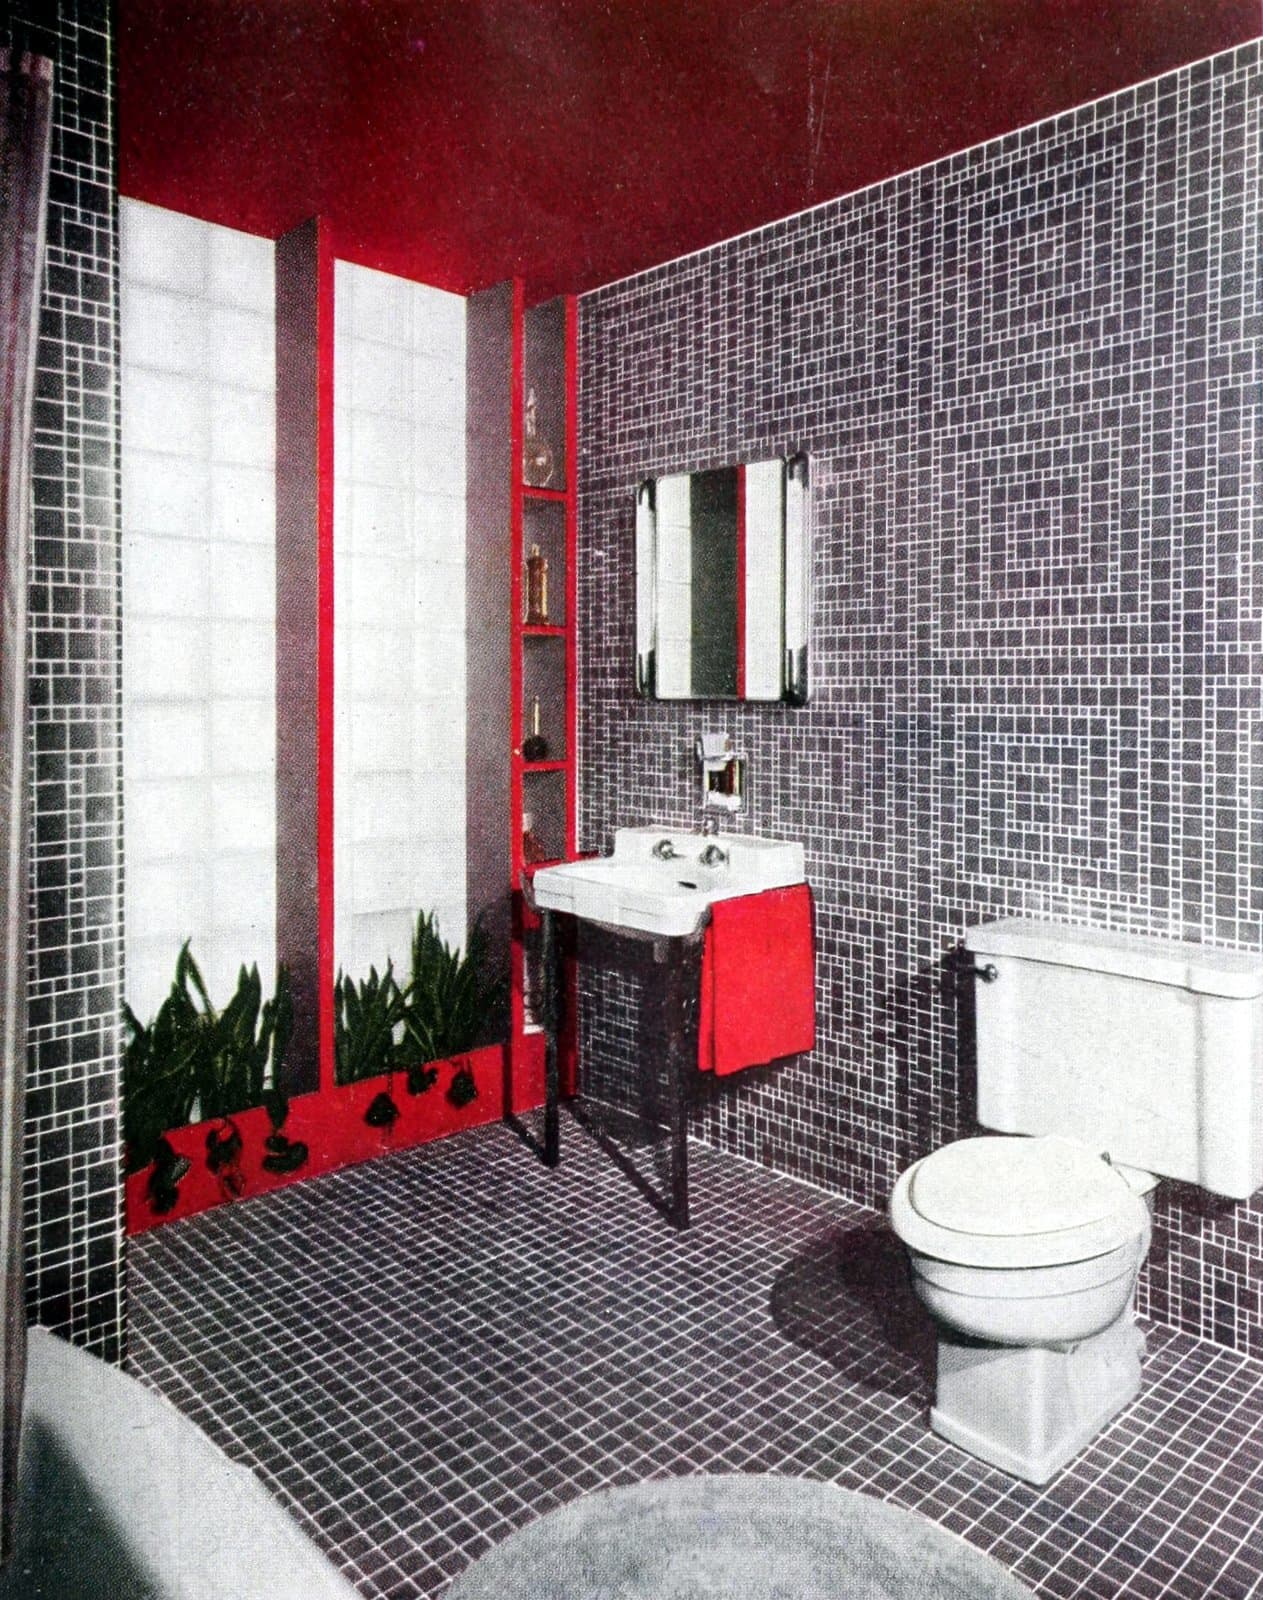 Eye-popping red and black sintage bathroom tile design ideas